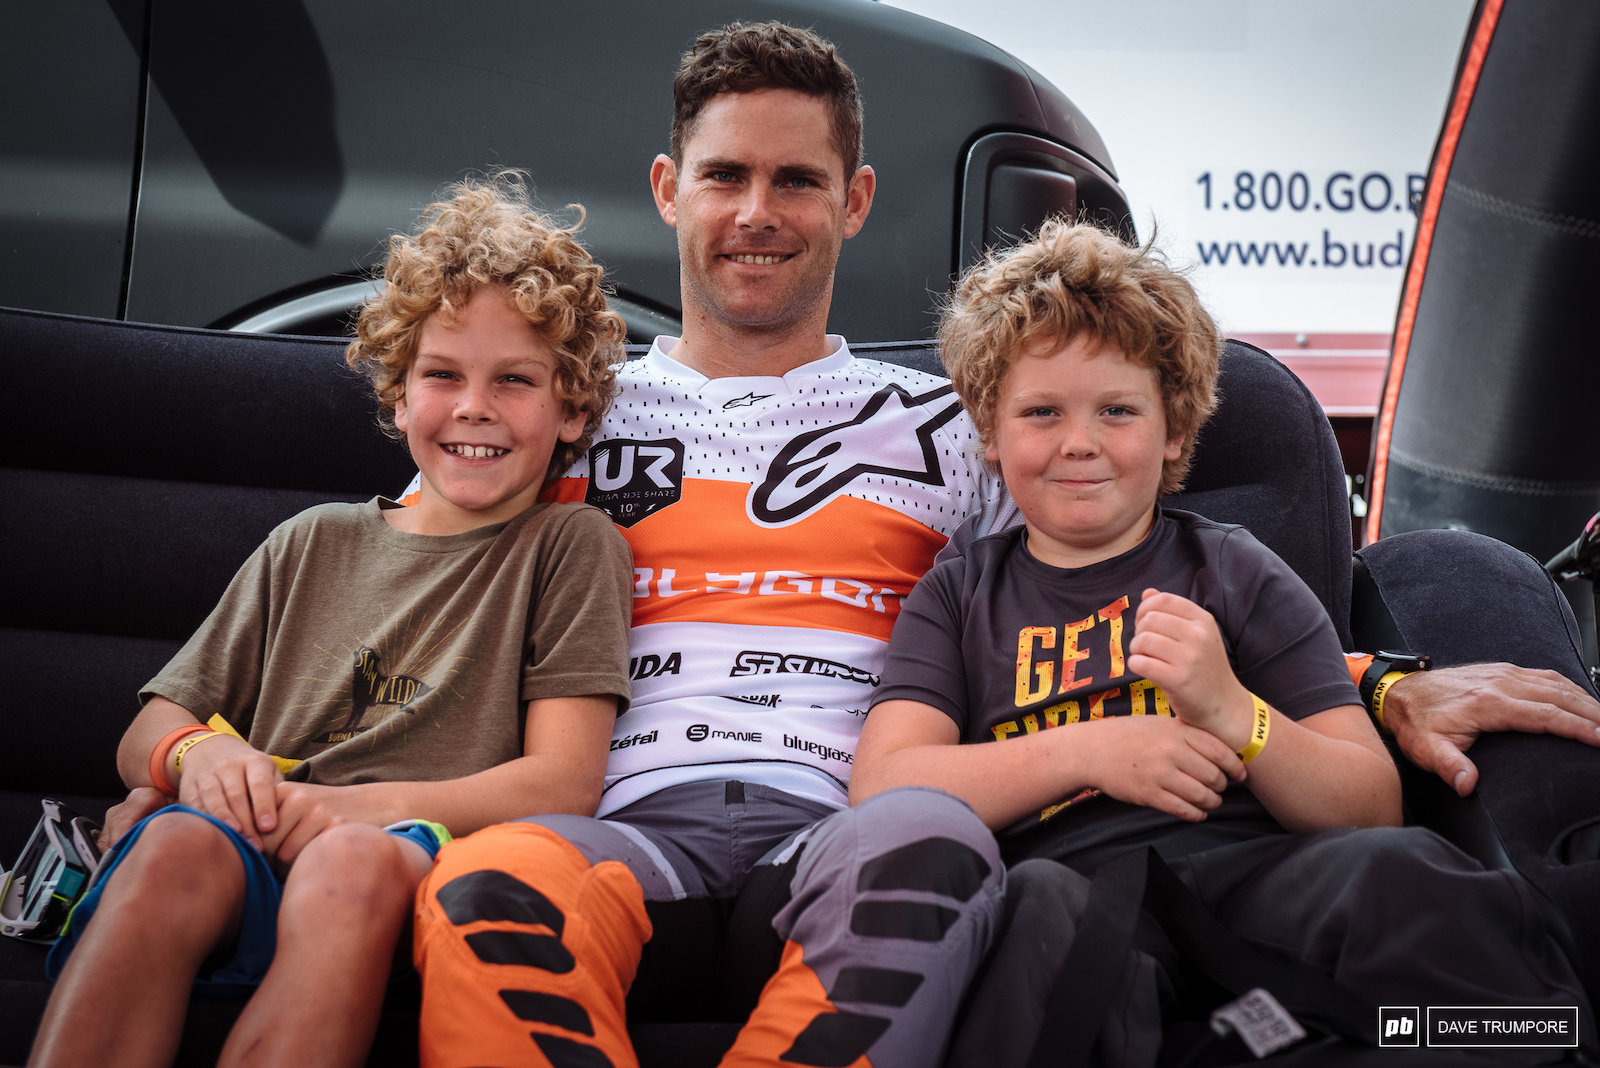 Mick Hannah has his two sons Duke on the left and Rowdy on the right here to watch their first ever World Cup event.